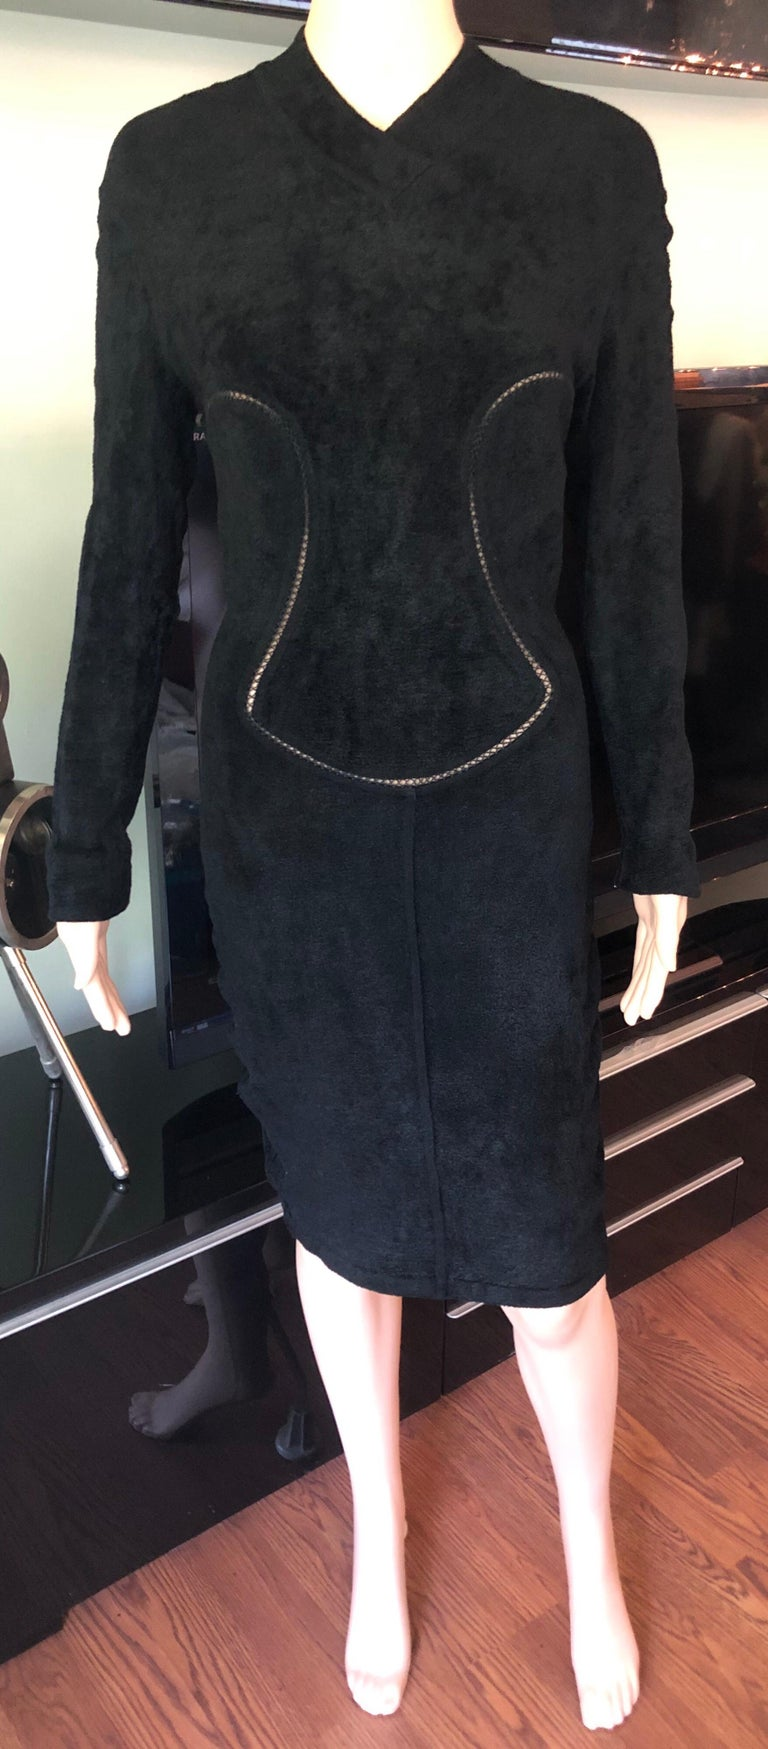 Azzedine Alaia F/W 1991 Vintage Bodycon Velvet Knit Black Dress In Good Condition For Sale In Totowa, NJ